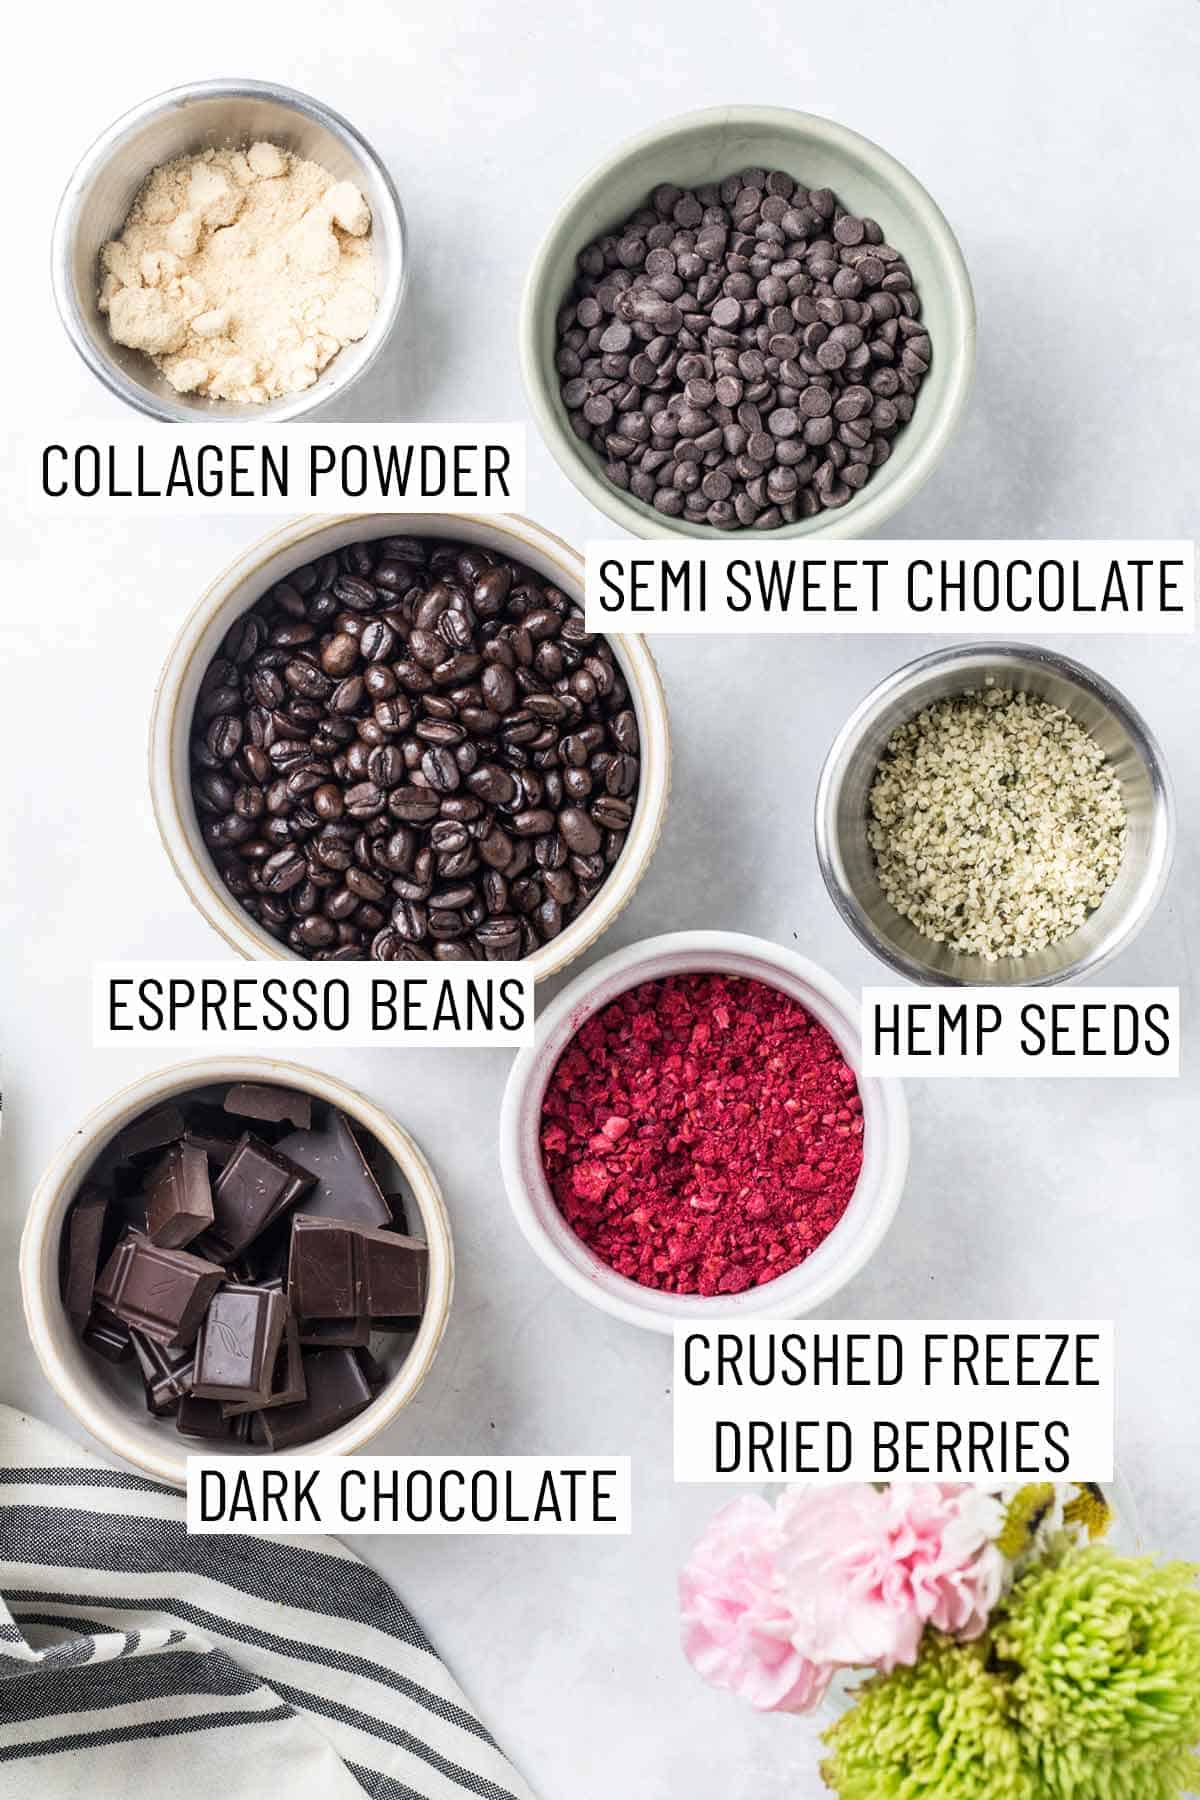 Ingredients for making homemade chocolate covered espresso beans as well as bowls of topping options.